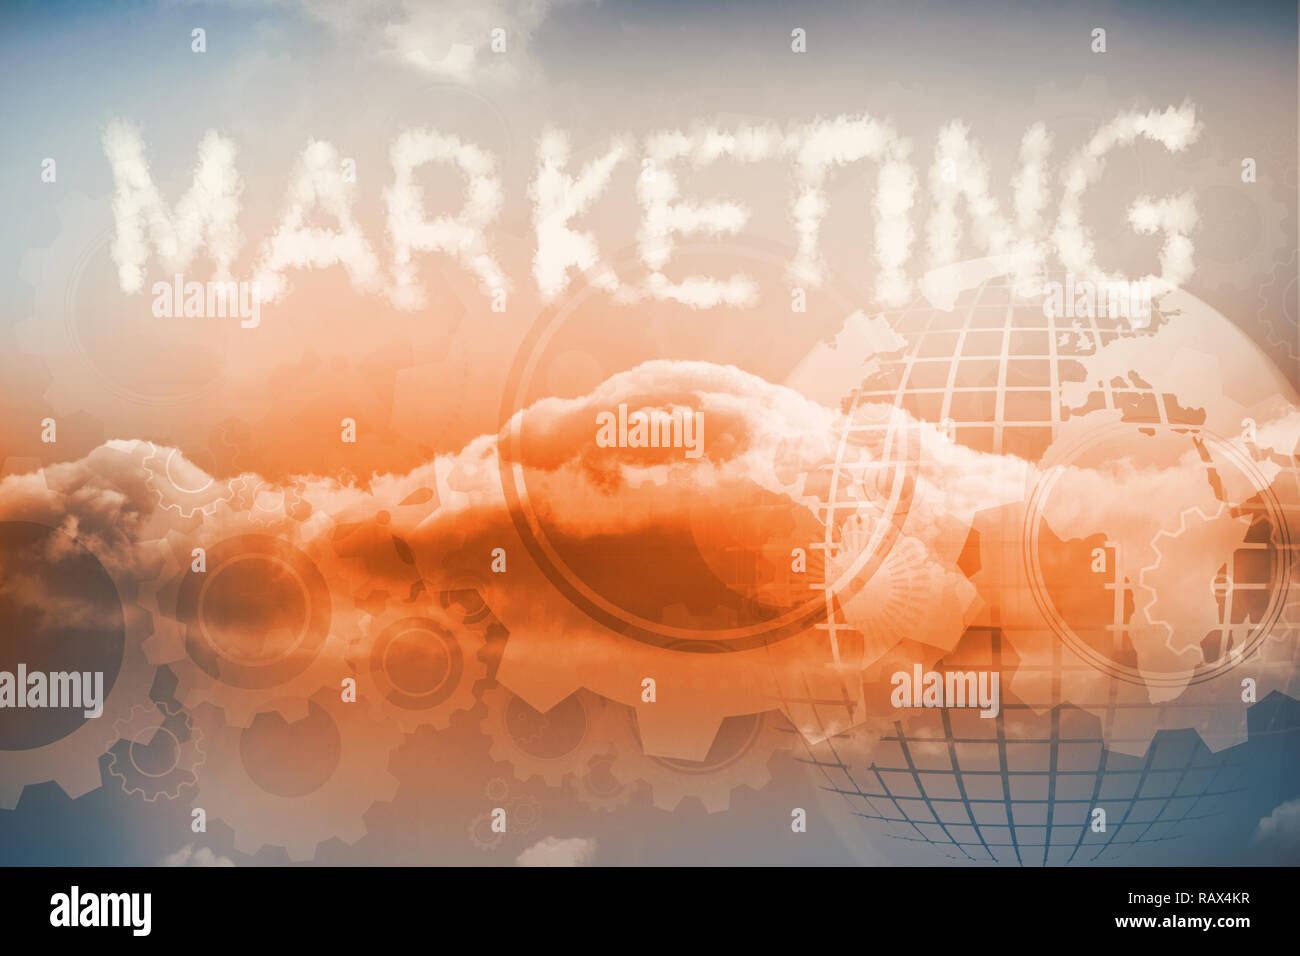 Clouds spelling out marketing - Stock Image